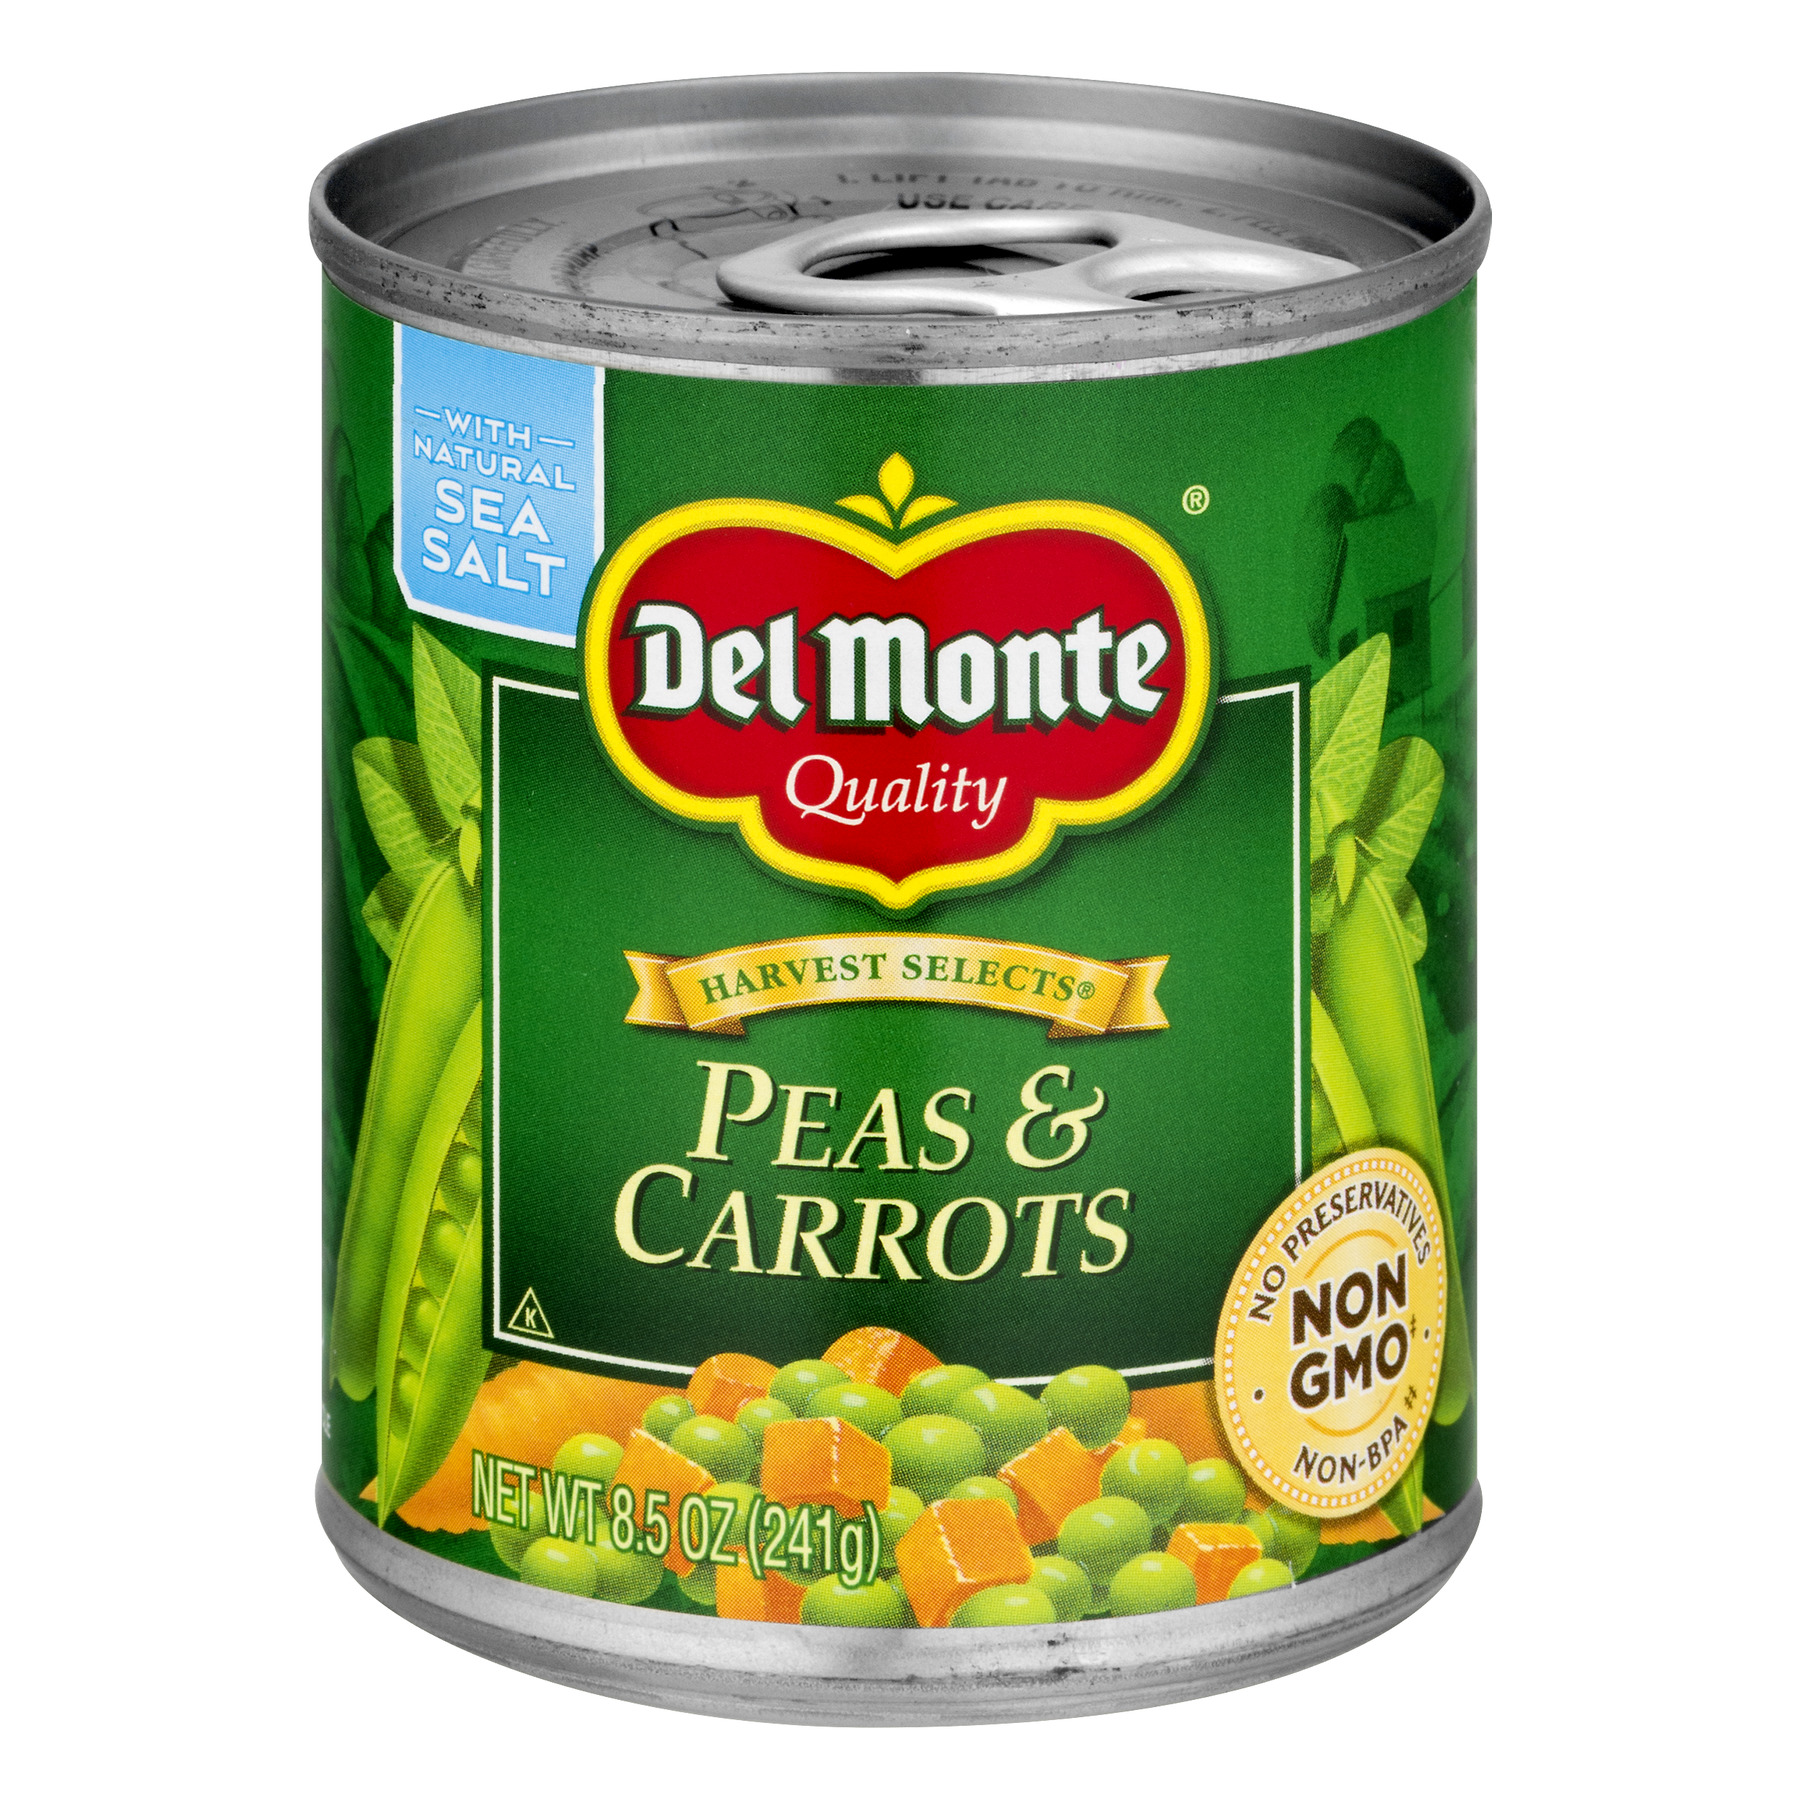 Del Monte Harvest Selects Peas & Carrots, 8.5 Oz